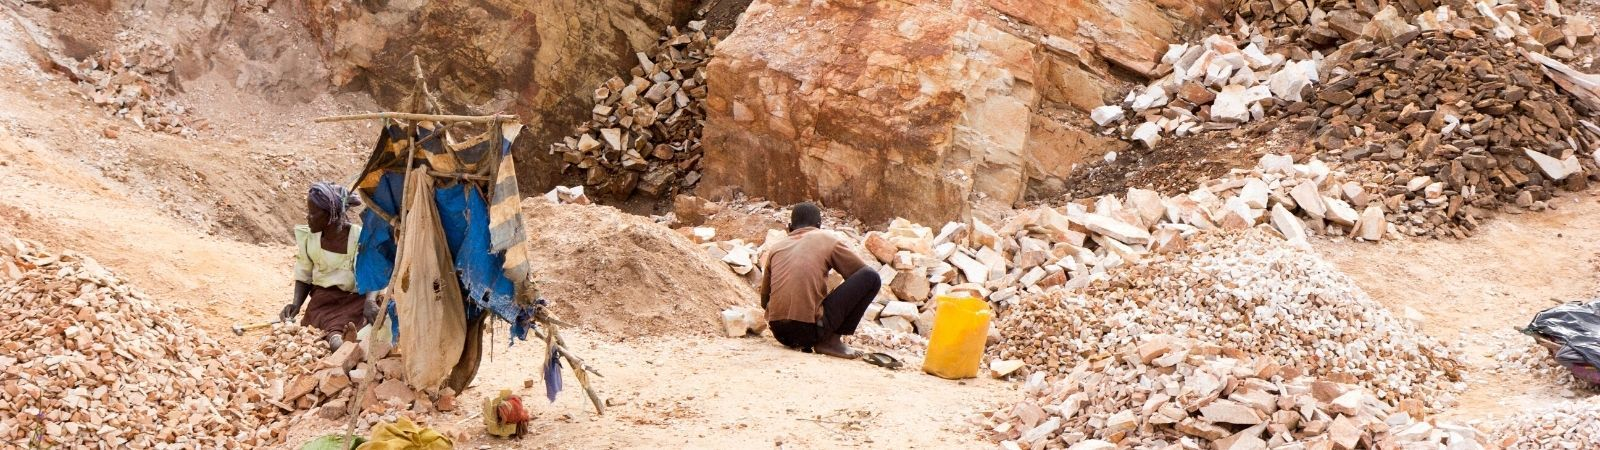 Desert mine on a relentlessly sunny day using modern day slavery with workers in tattered clothes.